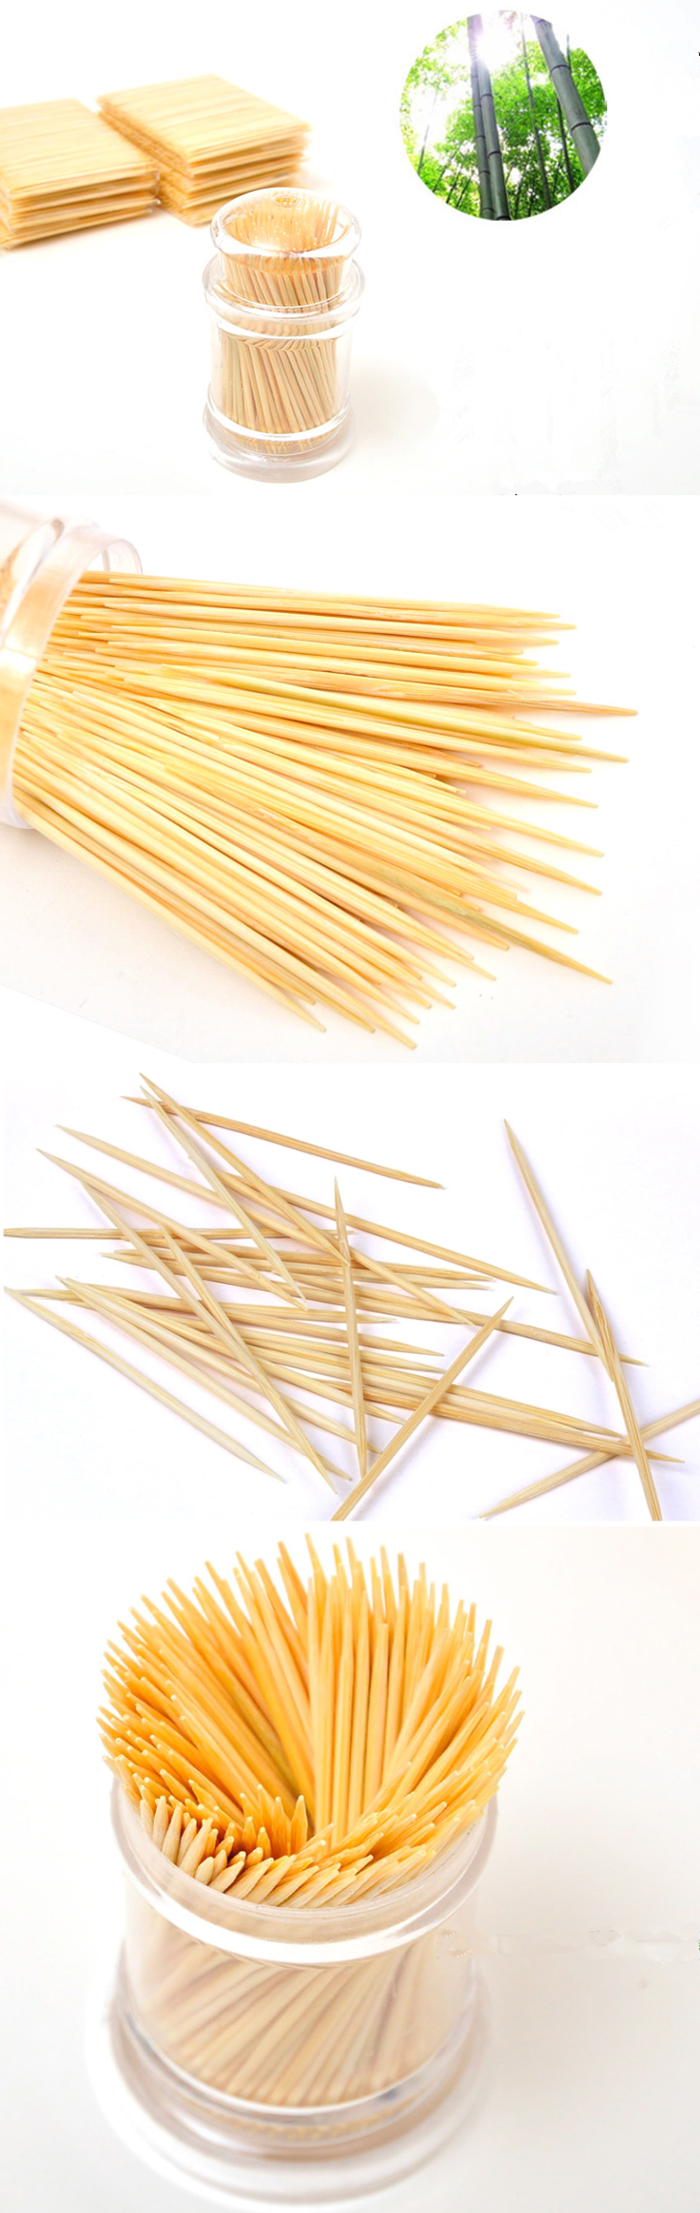 Bamboo wood skewers flatware bambu wooden toothpicks